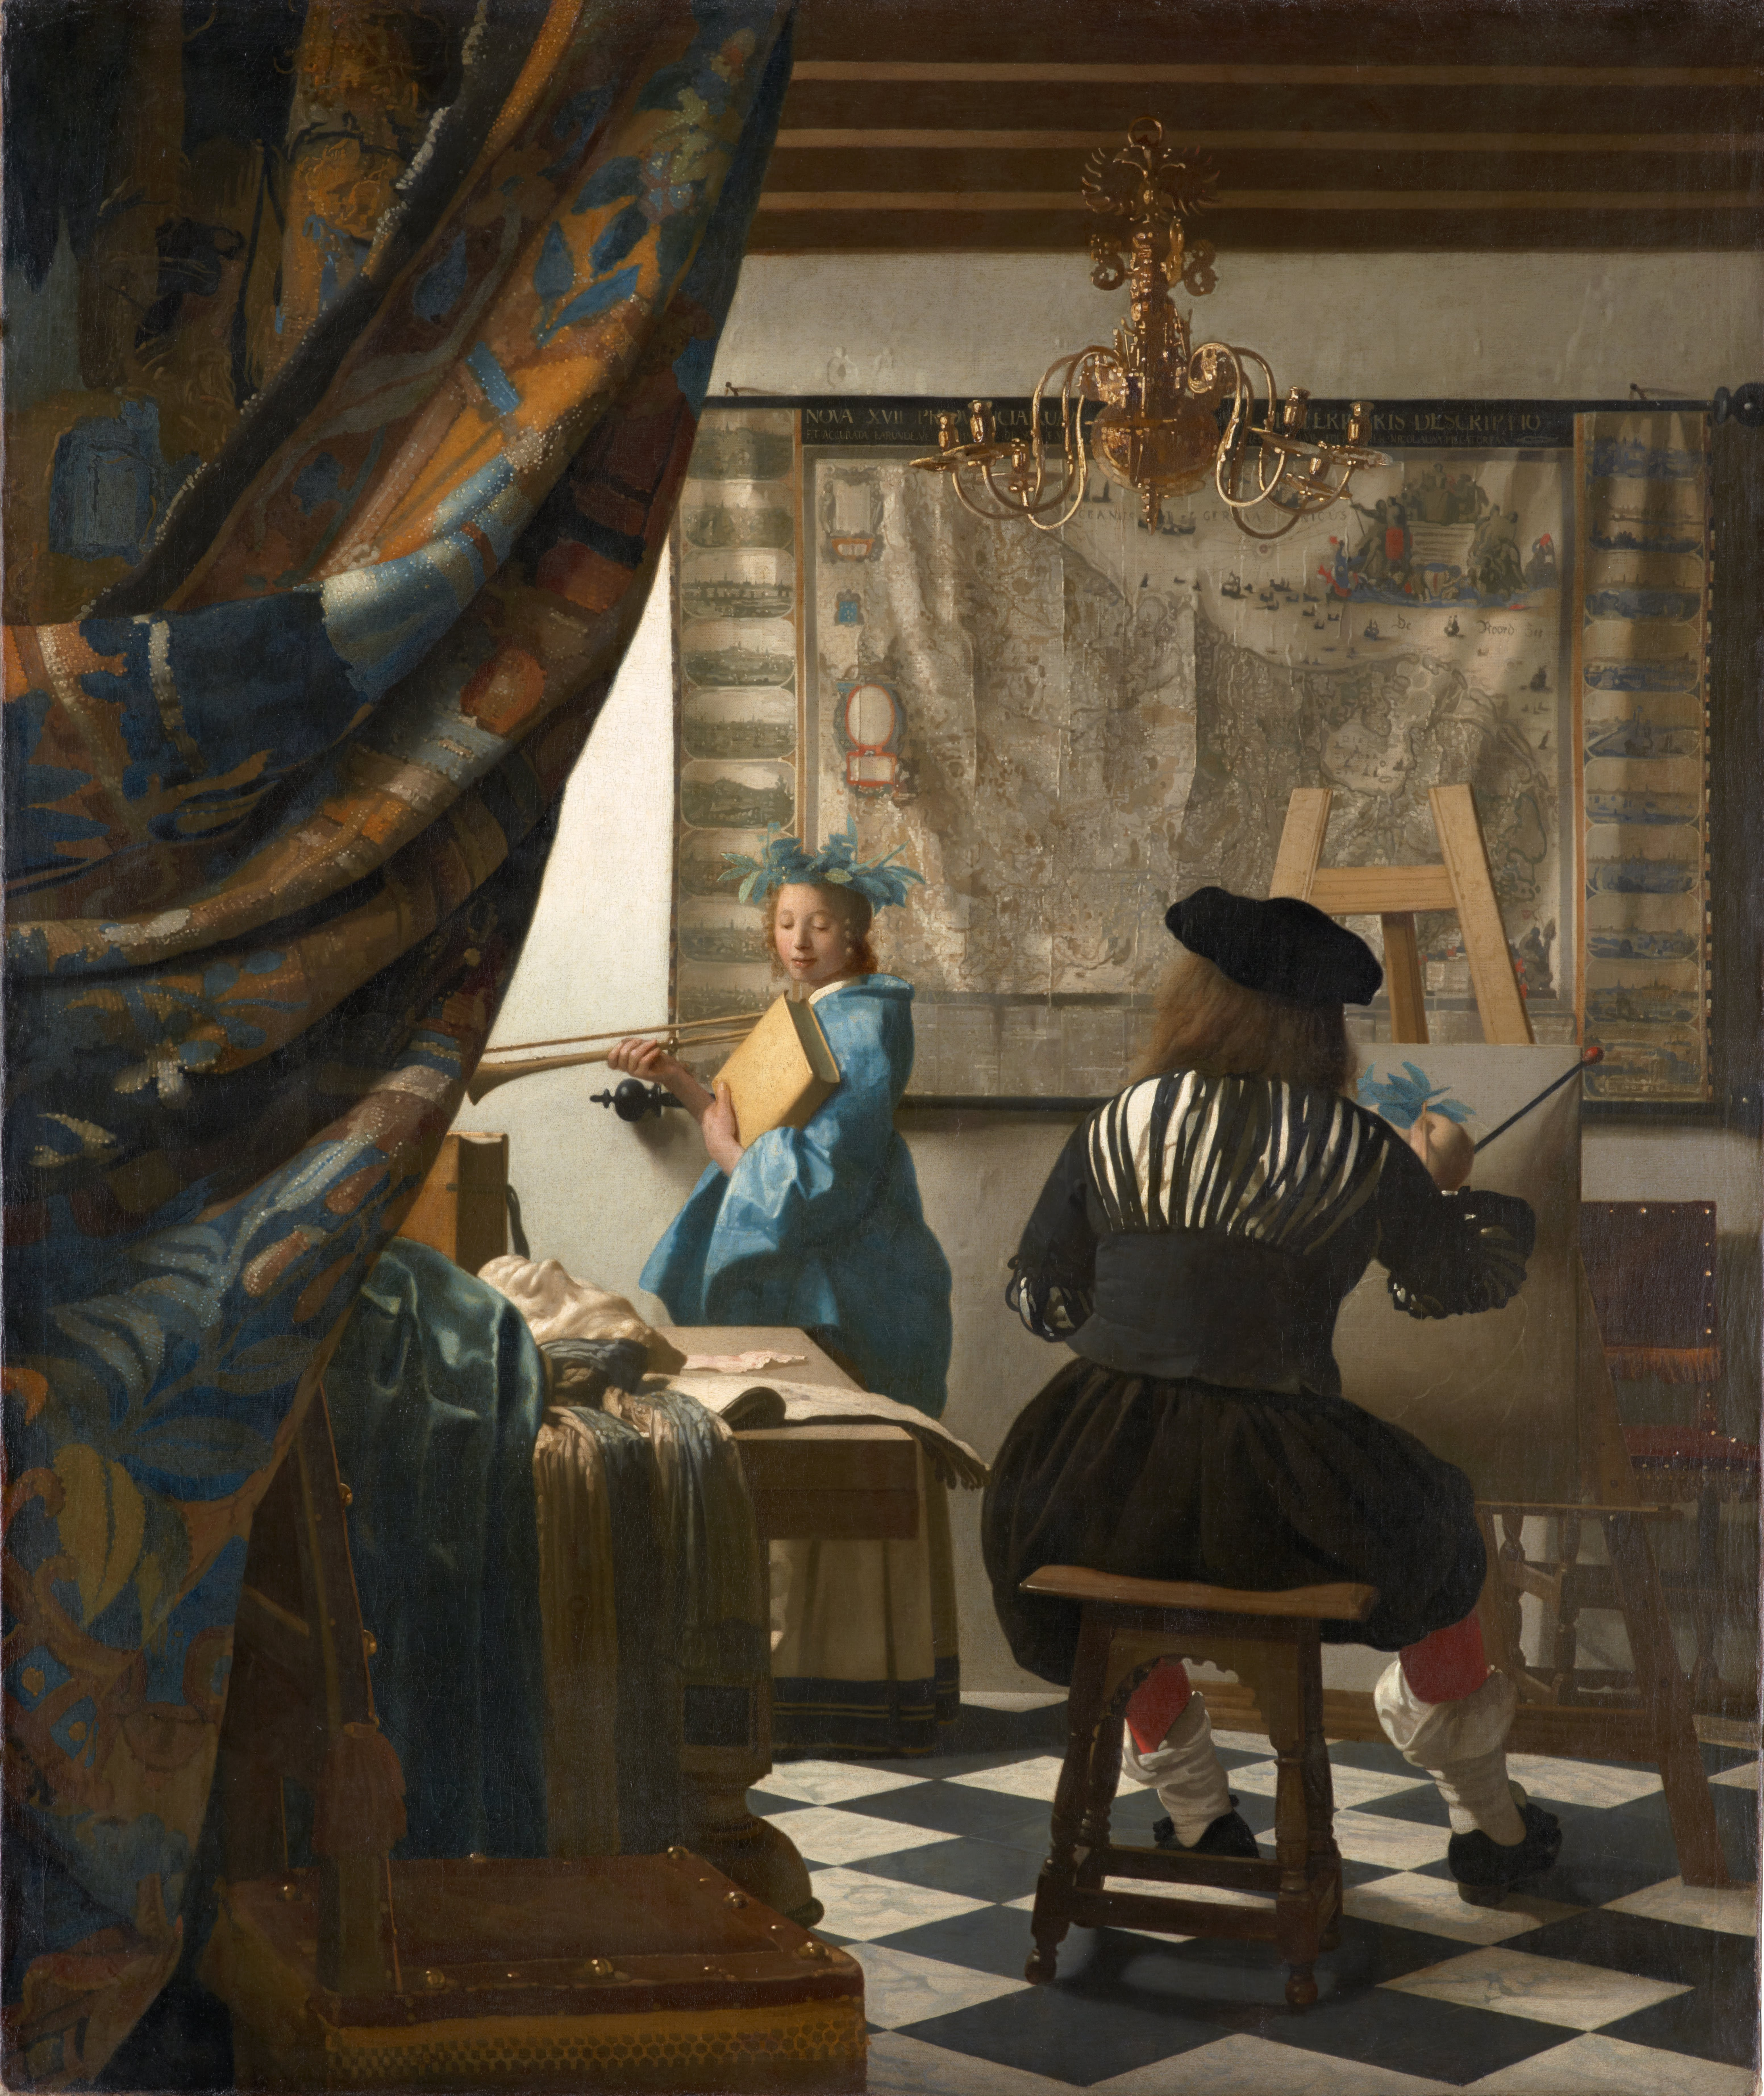 Genre painting   Wikipedia The Art of Painting by Jan Vermeer  ca  1660s   It was the 17th century  Dutch Masters like Vermeer who transformed genre scenes or genre painting   and genre